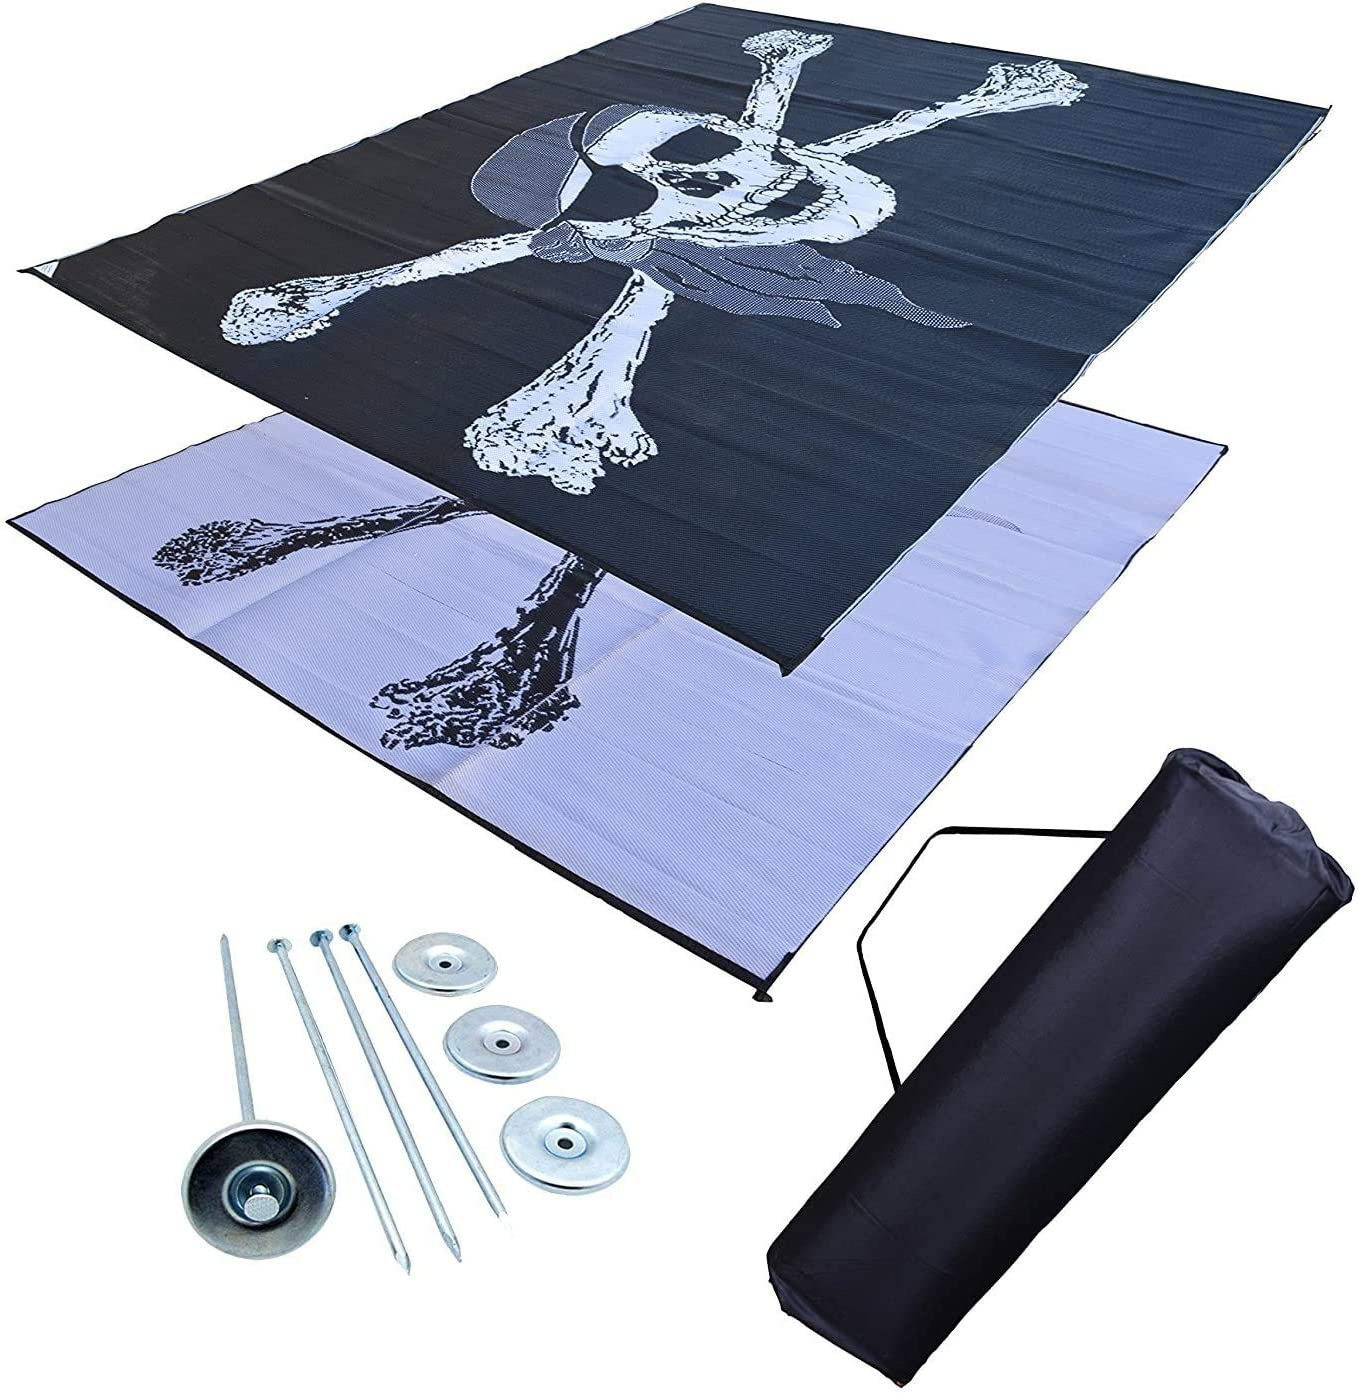 Professional EZ Travel Collection Reversible RV Outdoor Rug for Backyards, Beaches, Camping Grounds, Patios, and More, Storage Bag and Mat Stakes Included, Pirate 9×12